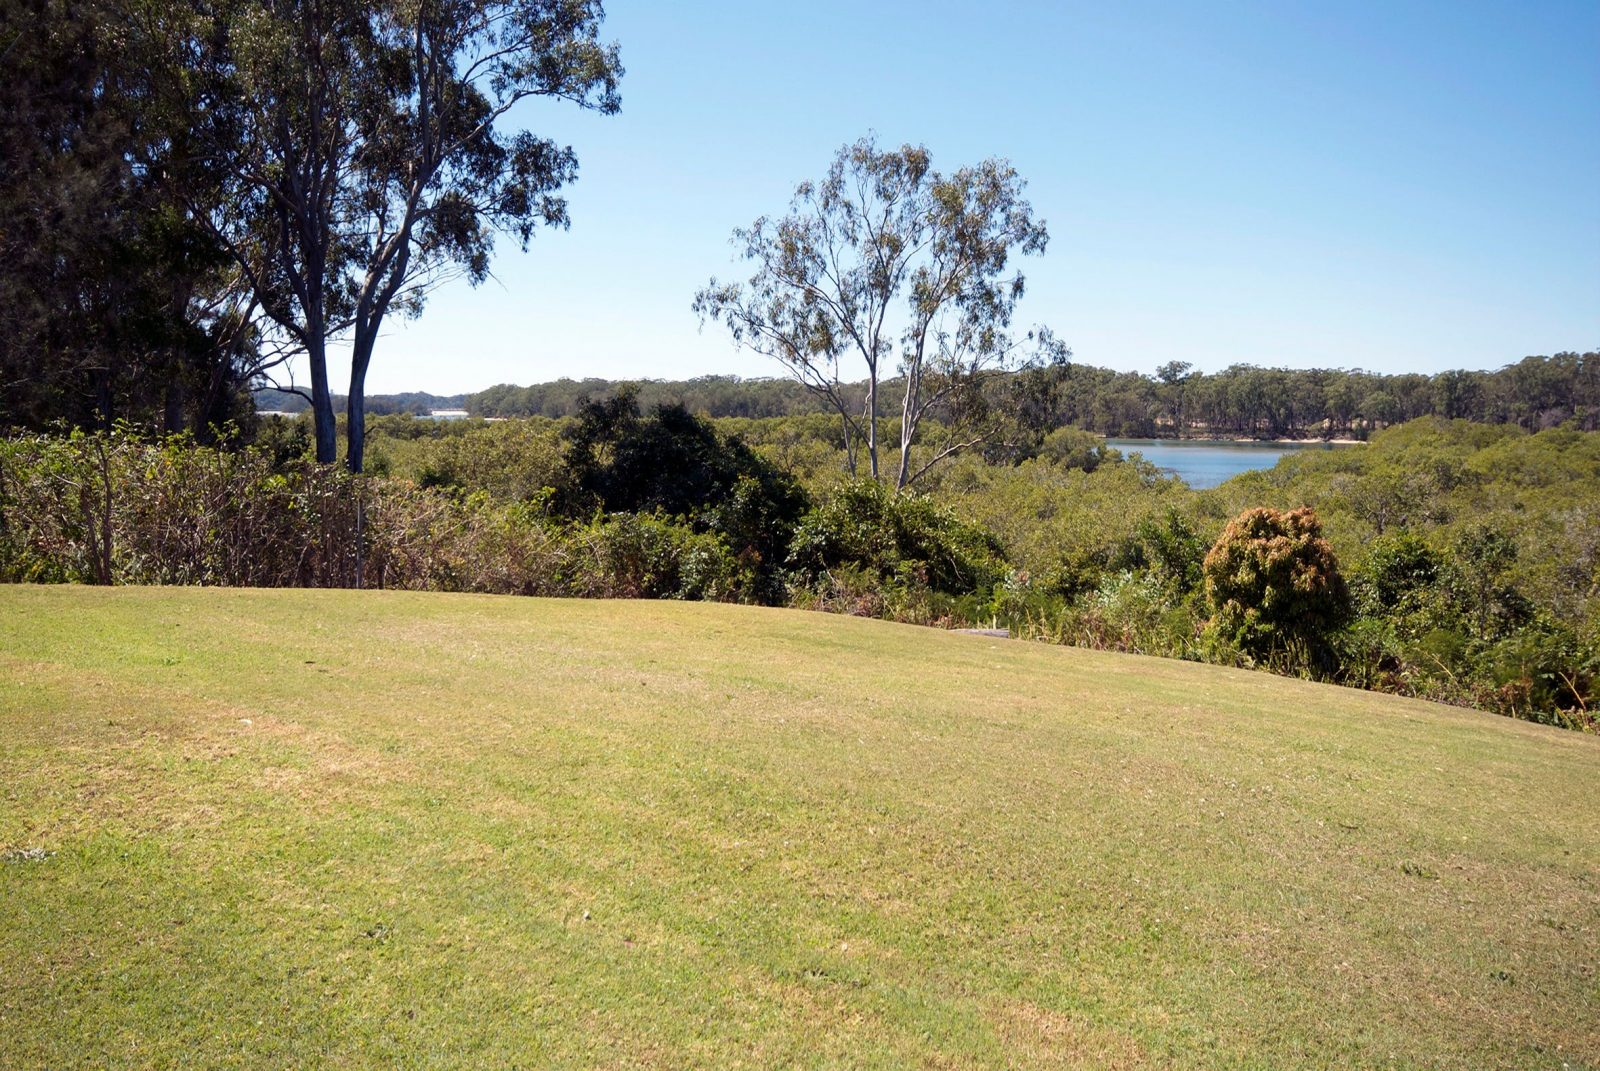 Rear view from property towards the Nambucca River